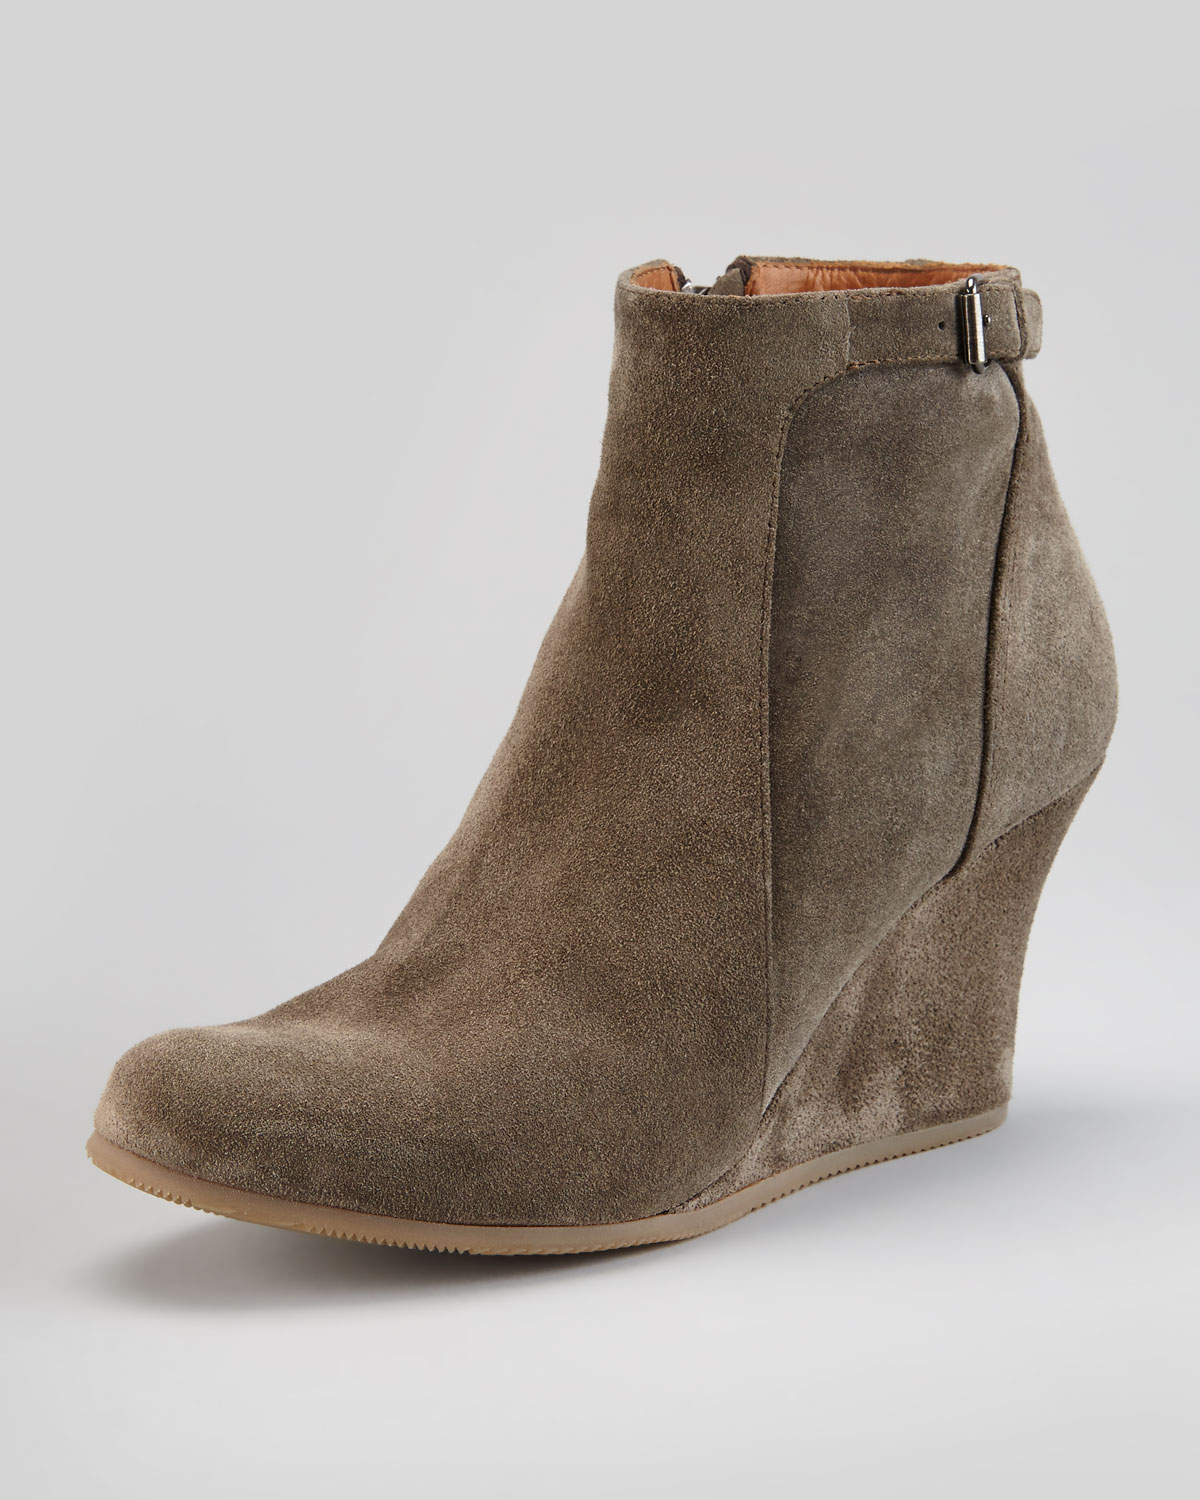 49b50ca46511 Lyst - Lanvin Suede Wedge Ankle Boot Gray in Gray